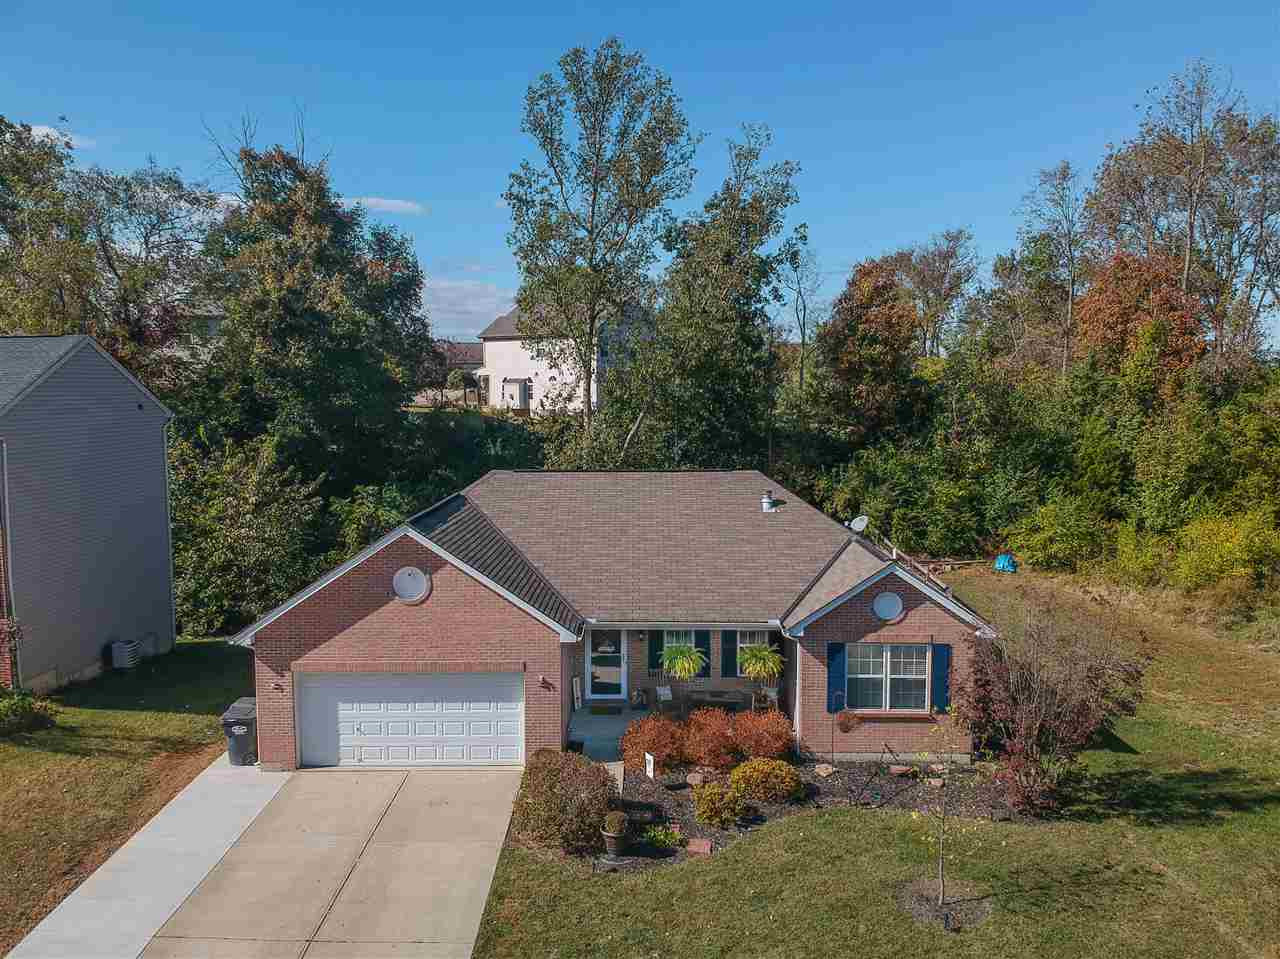 Photo 1 for 2136 Lunar Ln Independence, KY 41051